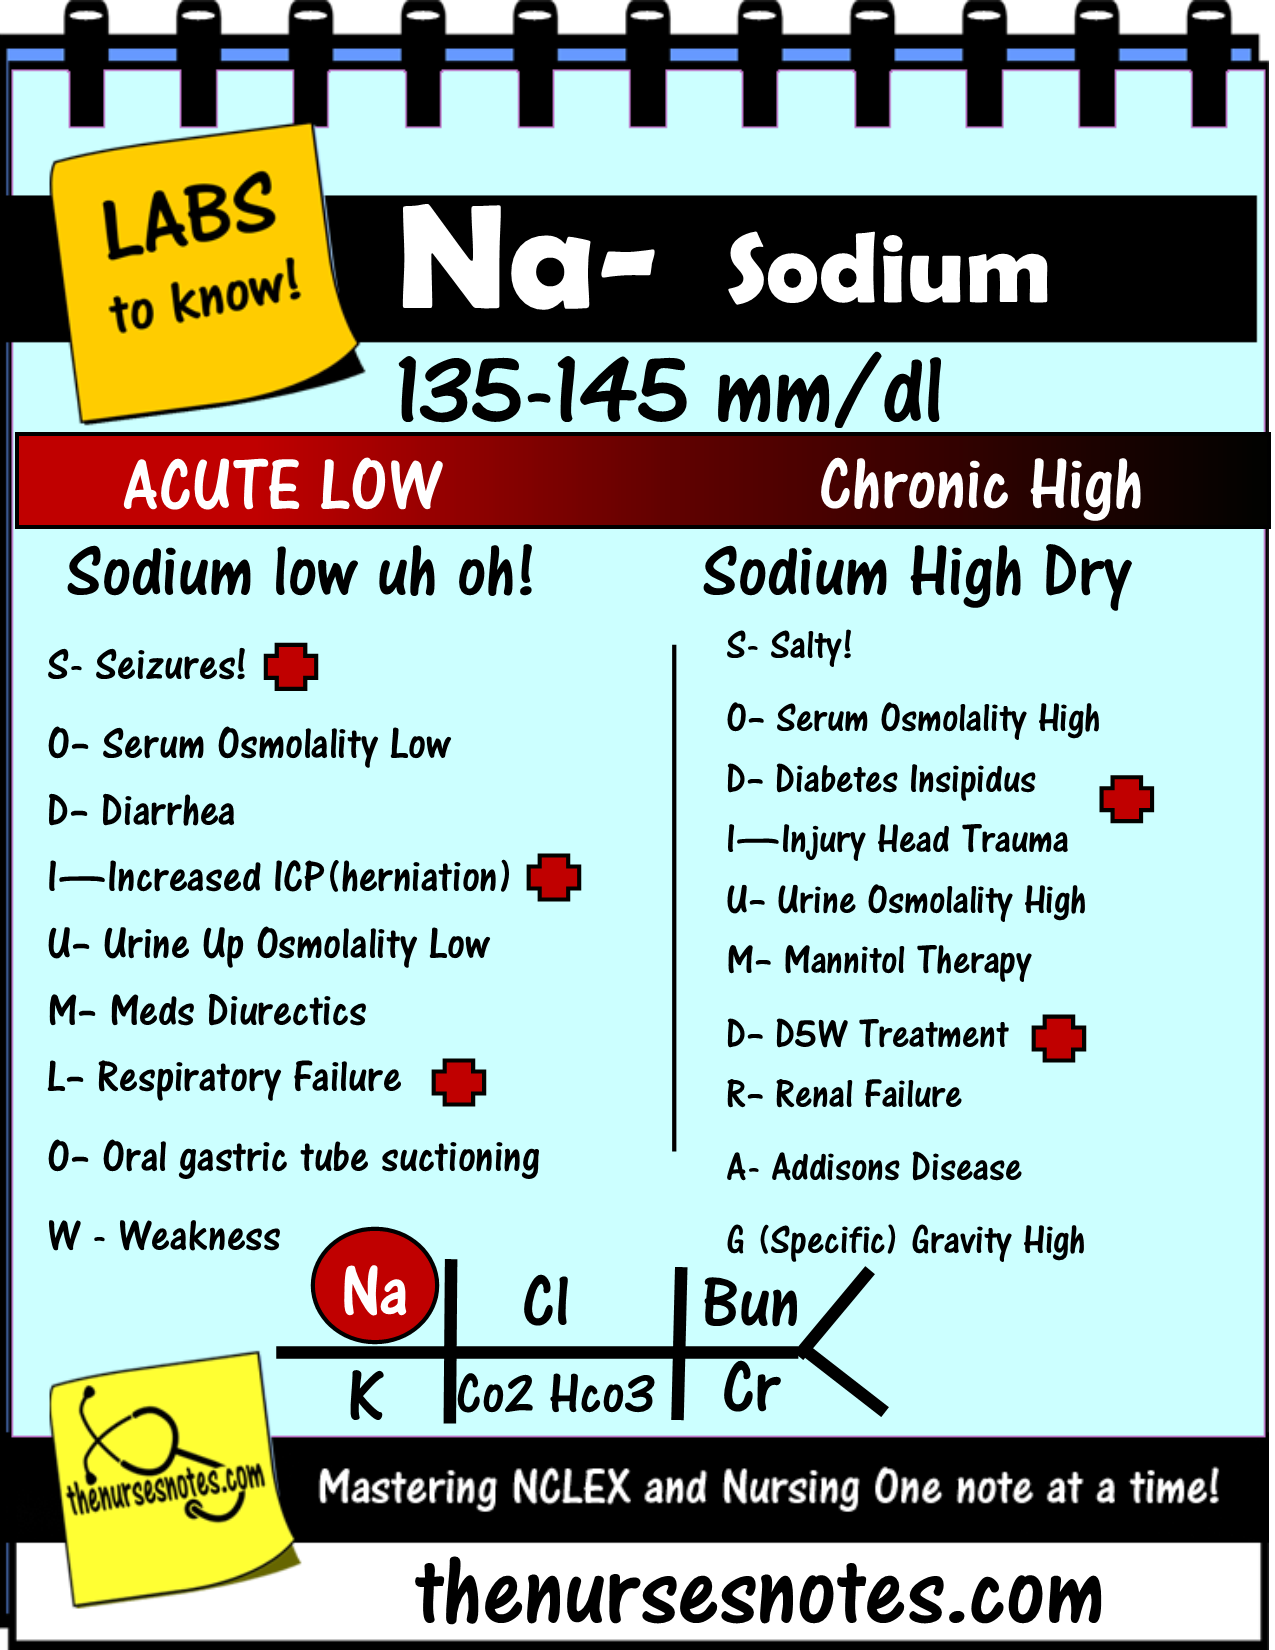 Lab Value Diagram | Hyponatremia Sodium Lab Value Blood Hyponatremia Mnemonic Nursing